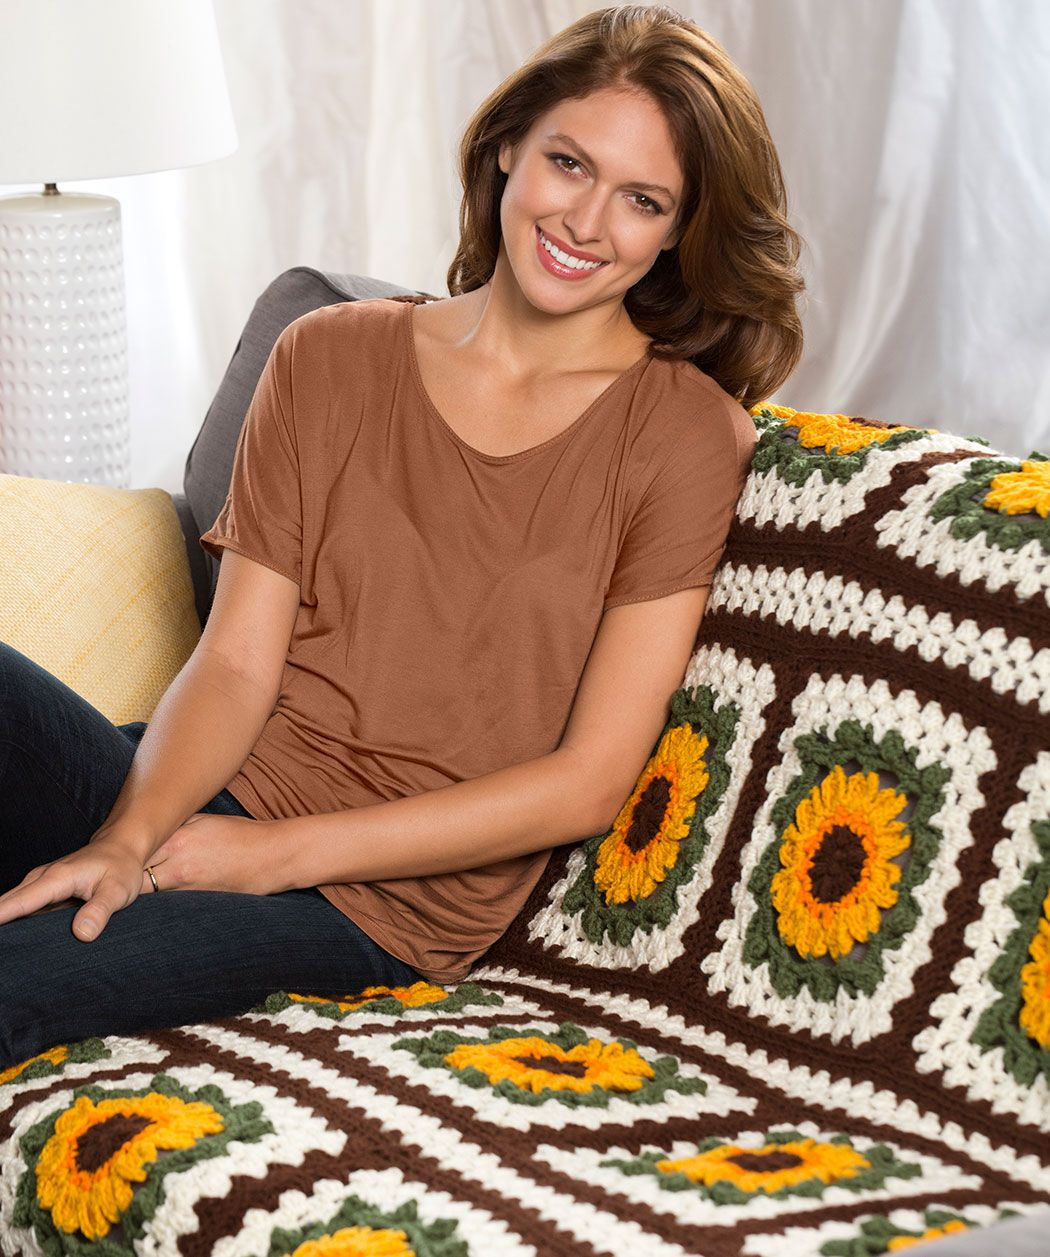 Sunflower throw crochet pattern crochet redheartyarns new new the bold colors of this crochet sunflower afghan make it really pop its a basic granny square free crochet afghan pattern that is fun to bankloansurffo Choice Image